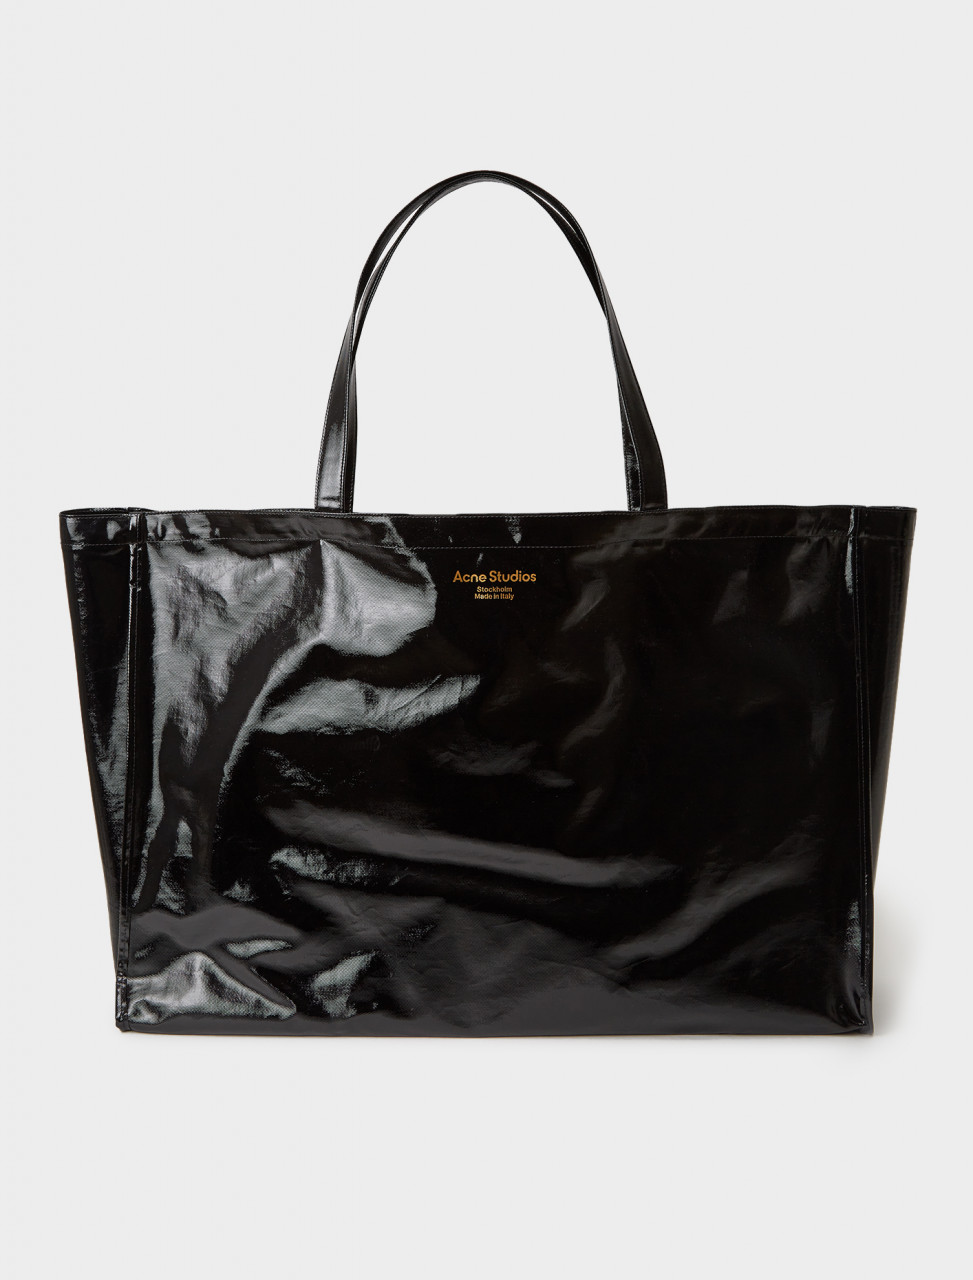 C10078-900 ACNE STUDIOS COATED COTTON TOTE BAG BLACK